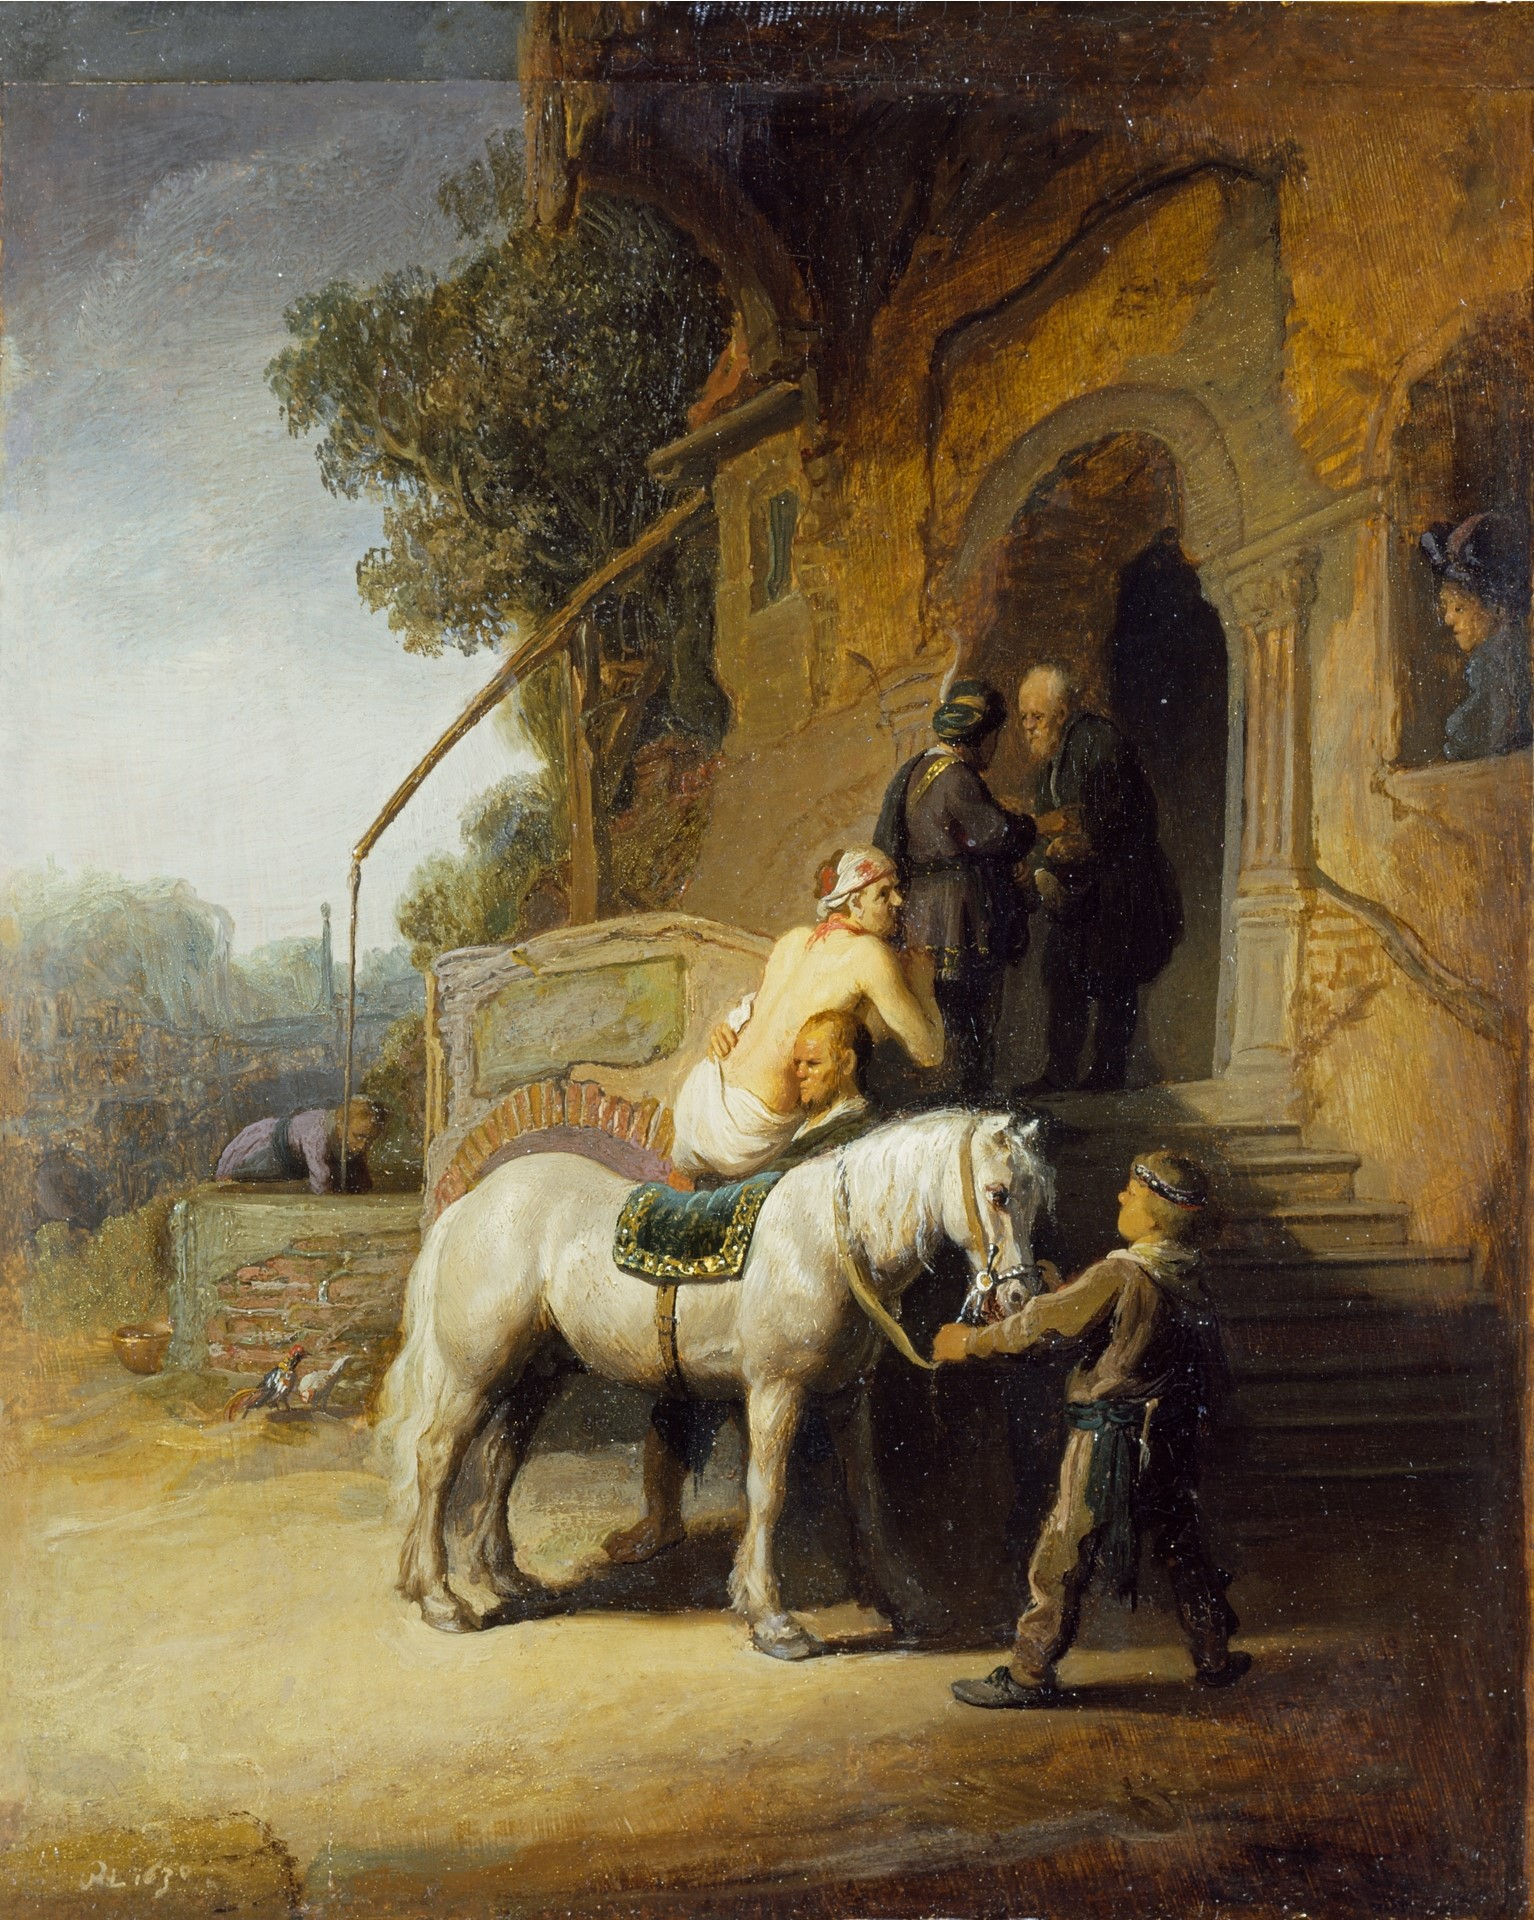 The Good Samaritan paying the innkeeper for the upkeep of the traveler